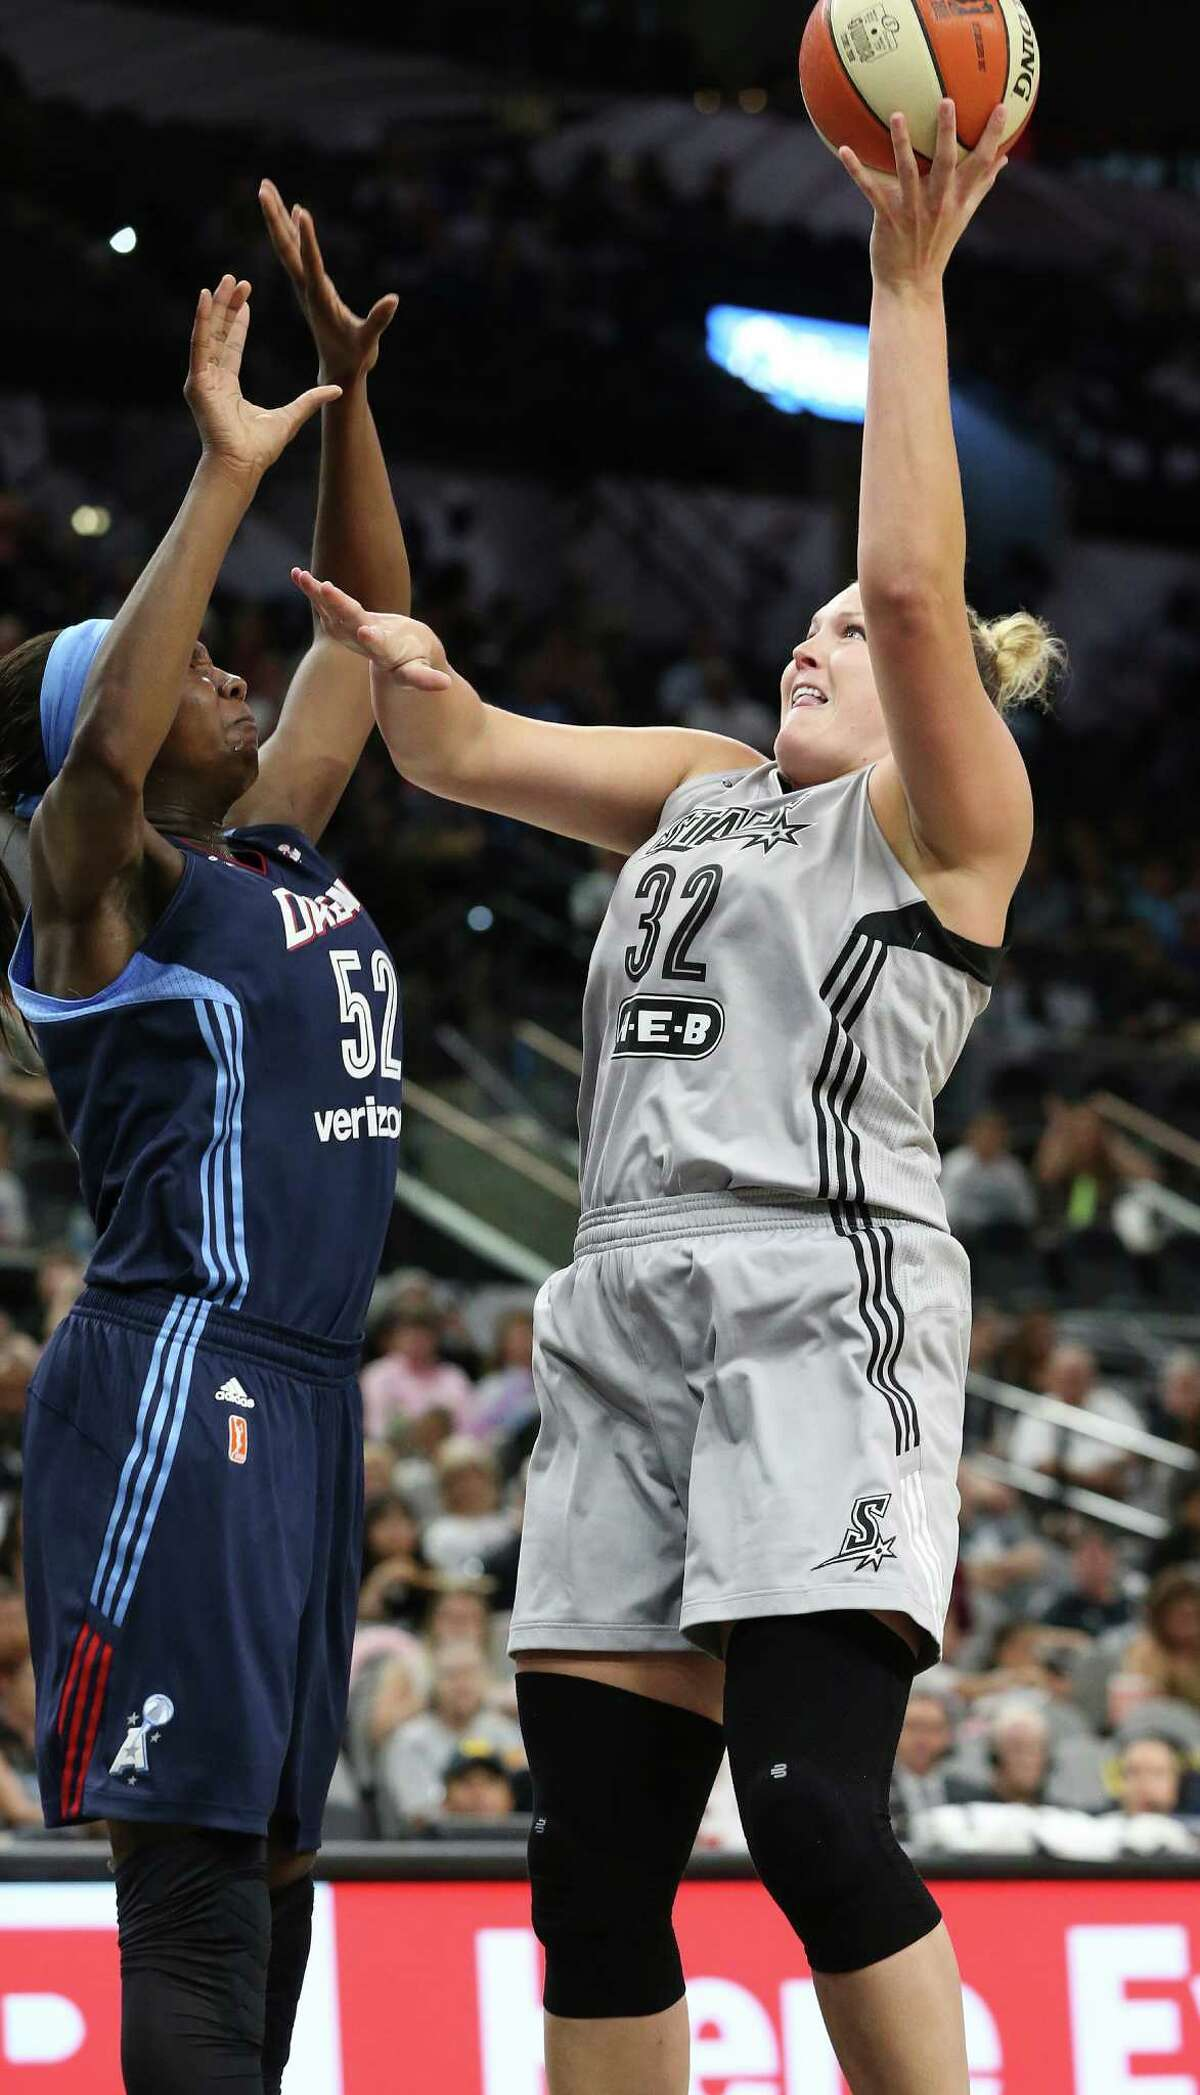 Jayne Appel-Marinelli puts up a shot against Elizabeth Williams in the first half as the Stars host Atlanta at the AT&T Center on June 25, 2016.